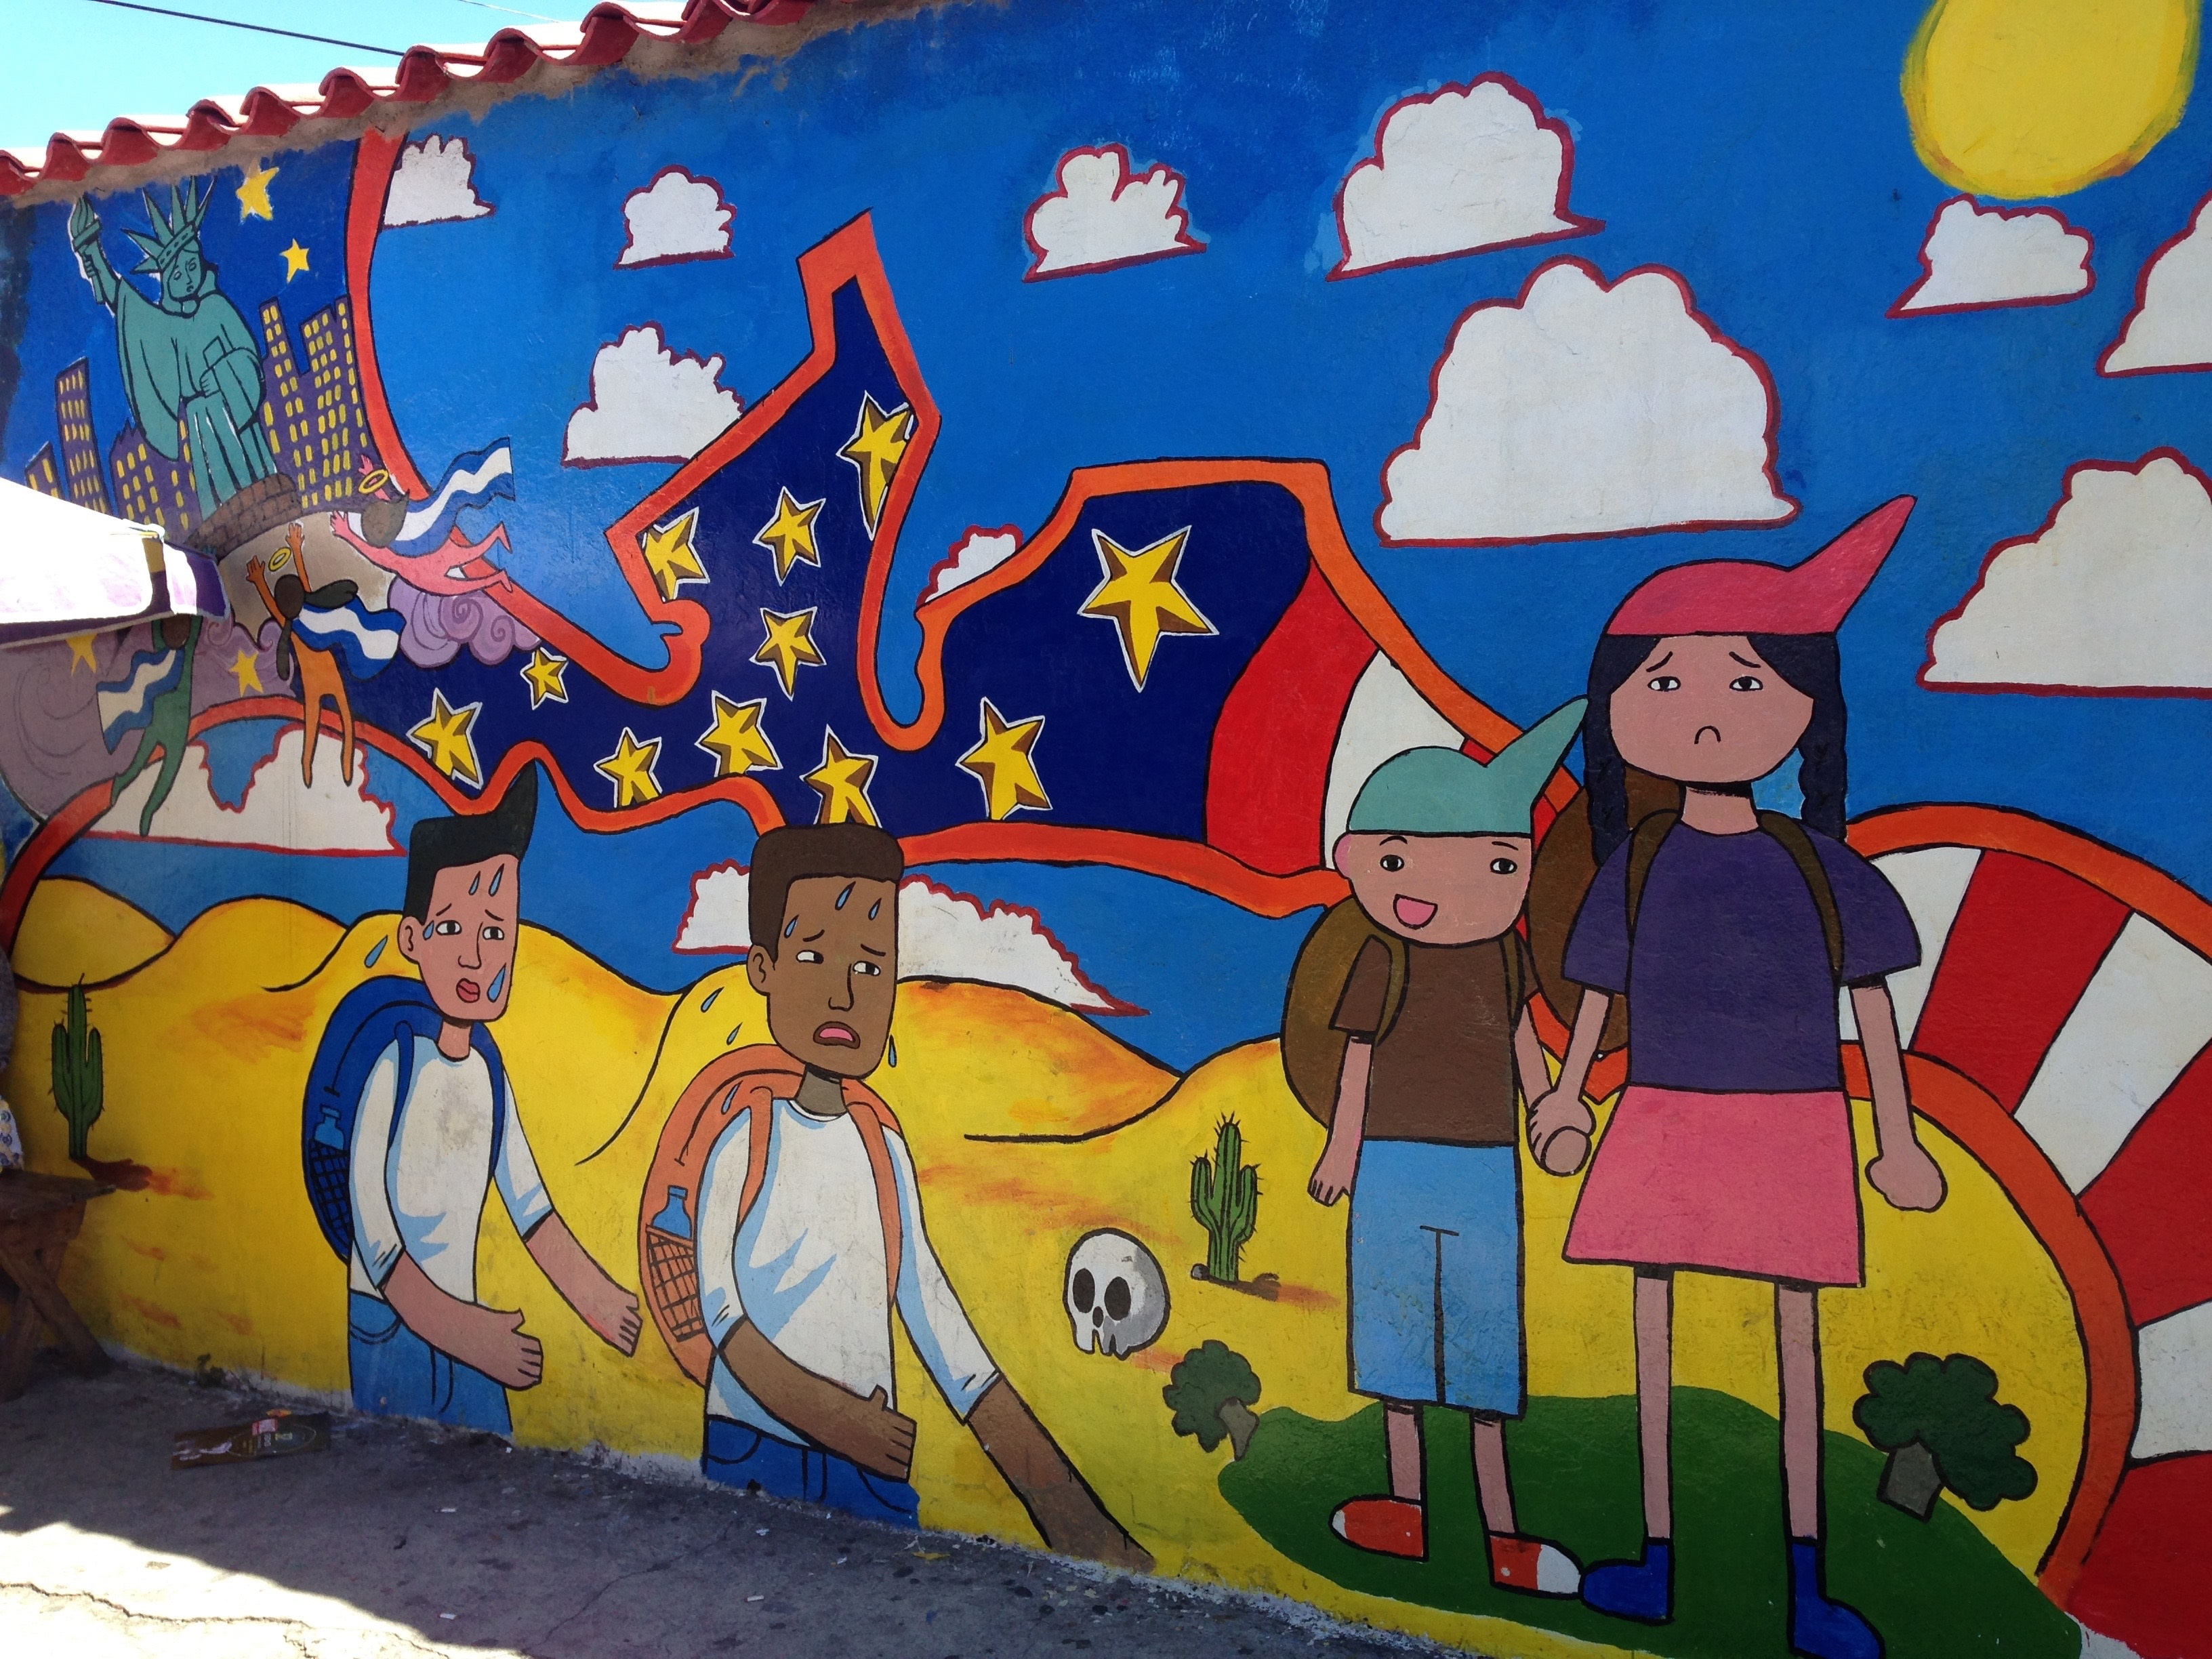 Immigration-themed mural in El Salvador.